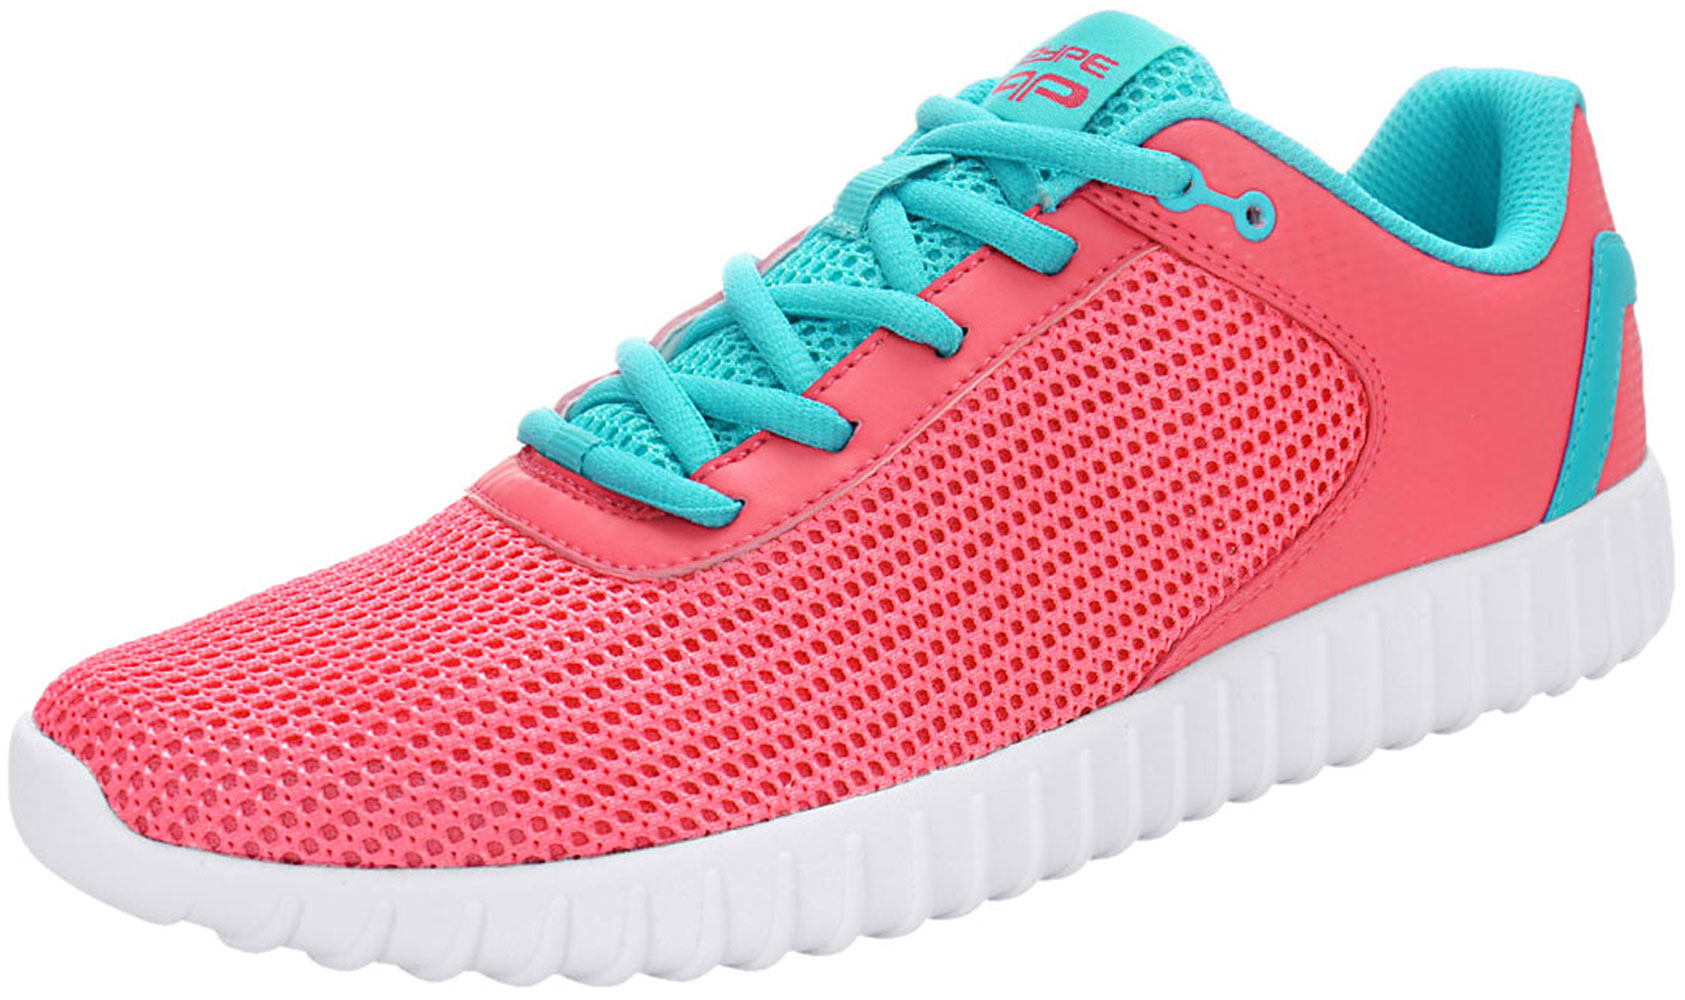 PYPE Women Contrast Color PU Panel Mesh Training Shoes Pink US 8.5